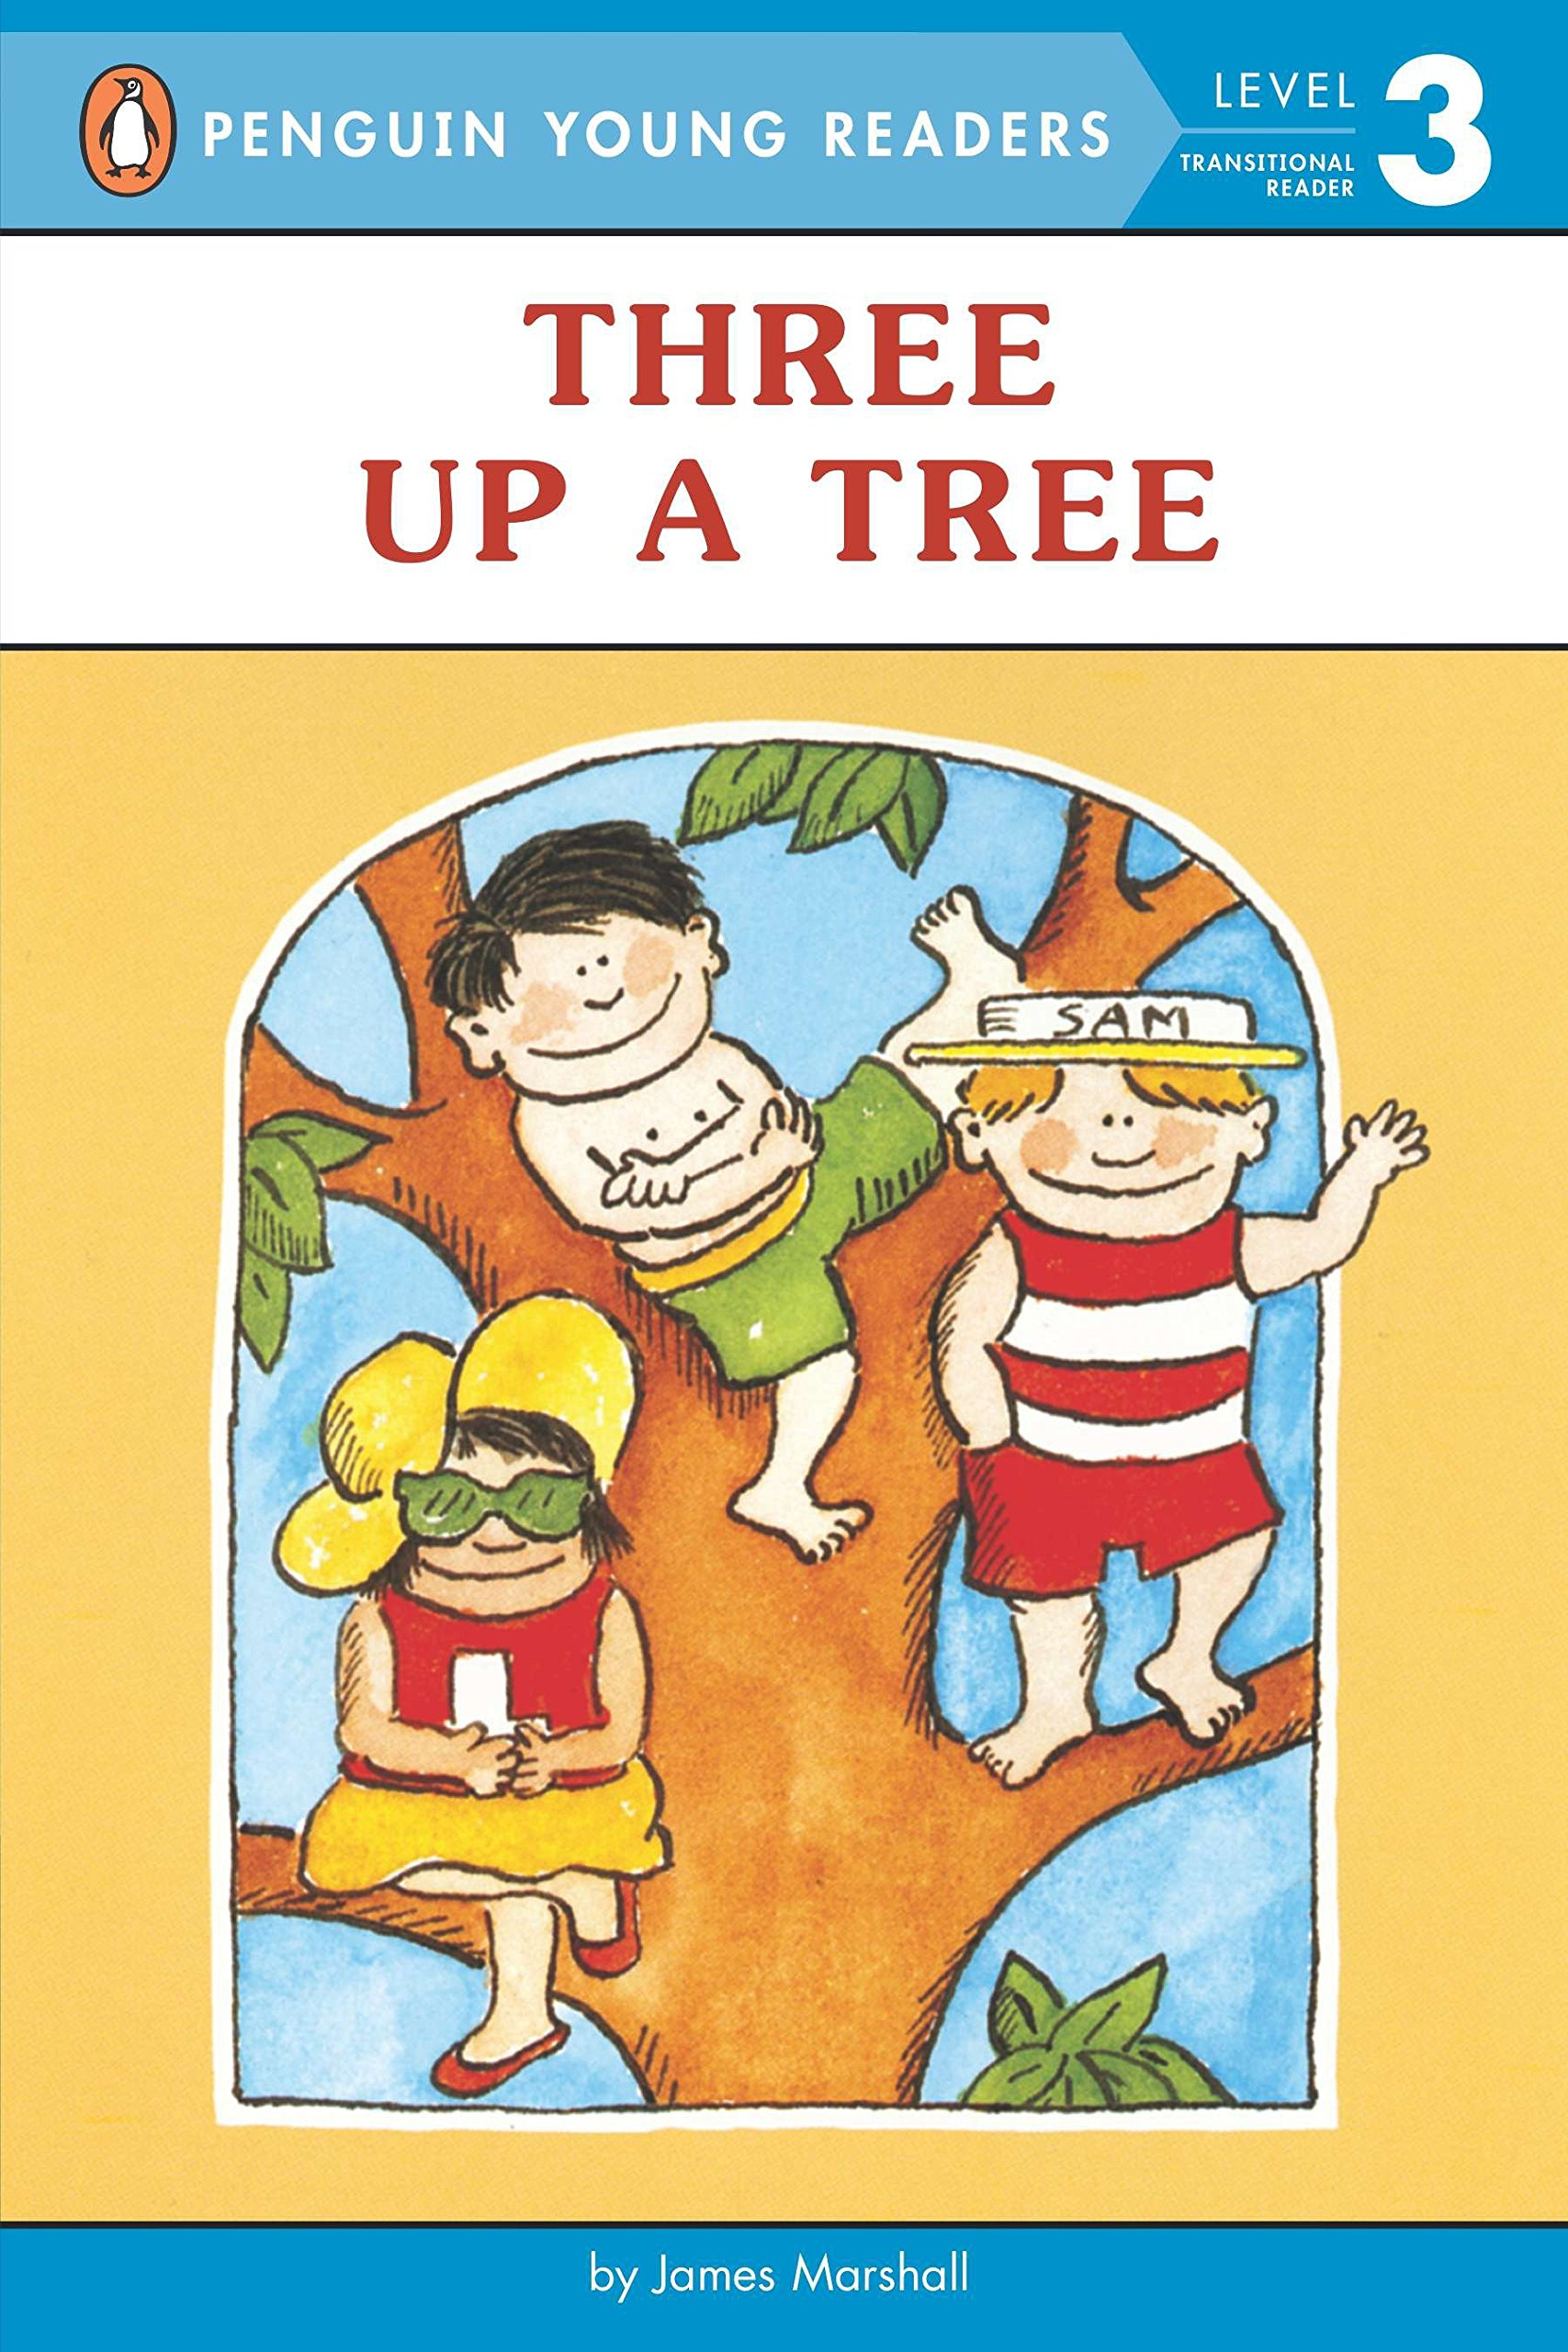 Amazon.com: Three up a Tree (Penguin Young Readers, Level 3)  (9780140370034): James Marshall: Books